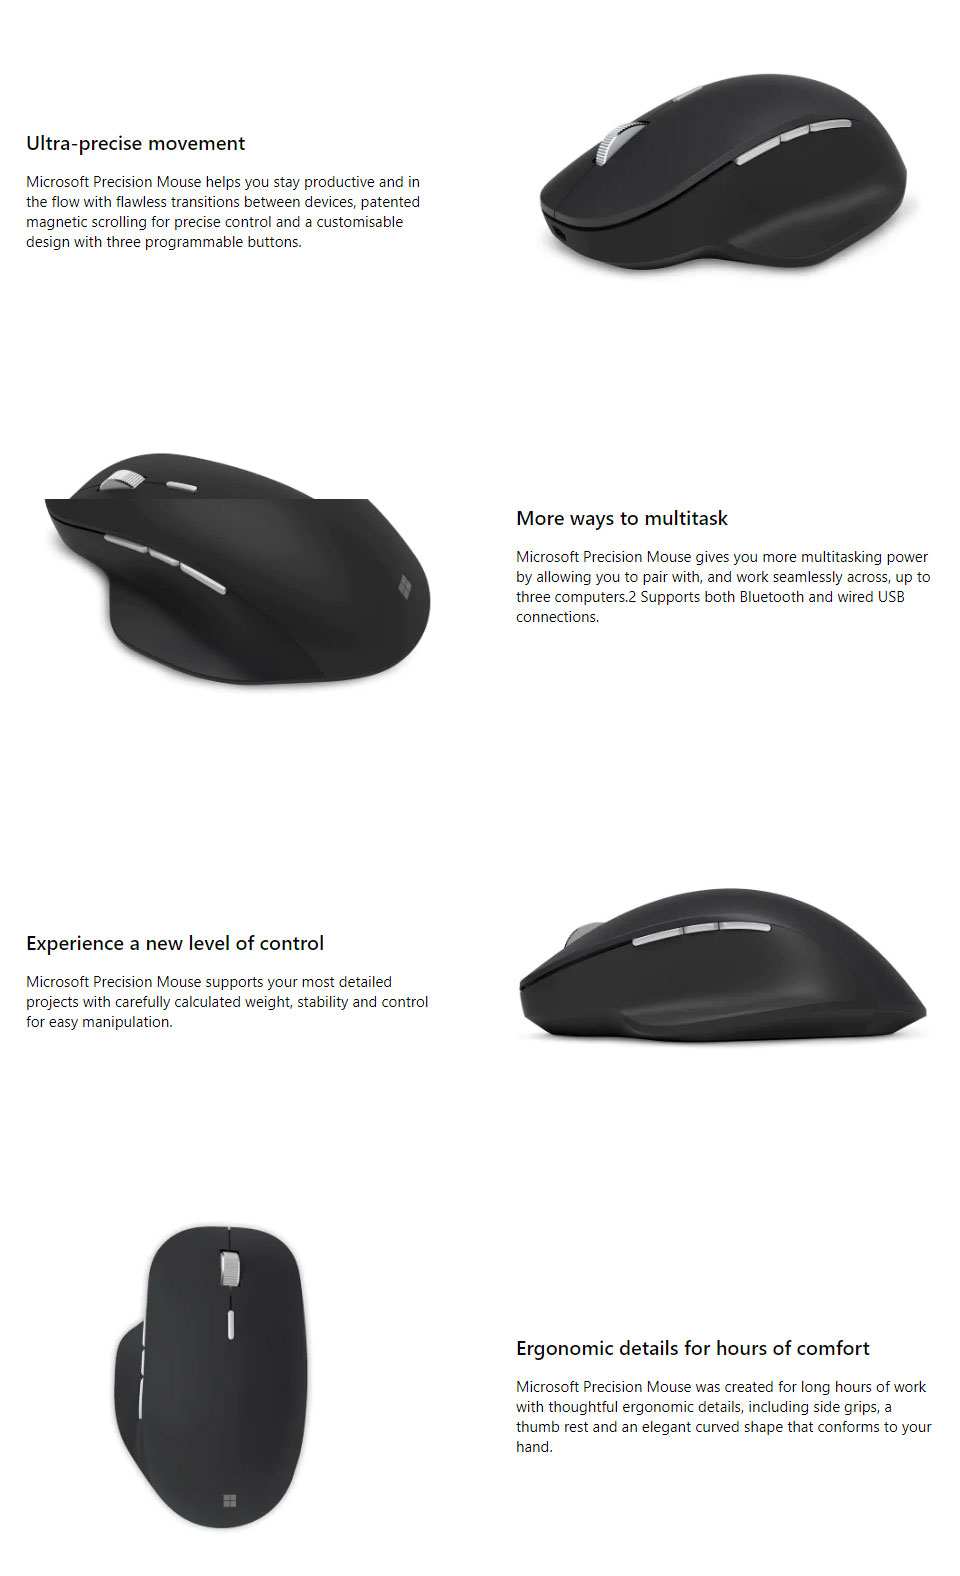 2d1d4232a5d Designed for exceptional accuracy, comfort, and control, the new Microsoft  Precision Mouse helps you stay in your flow with flawless scrolling, ...